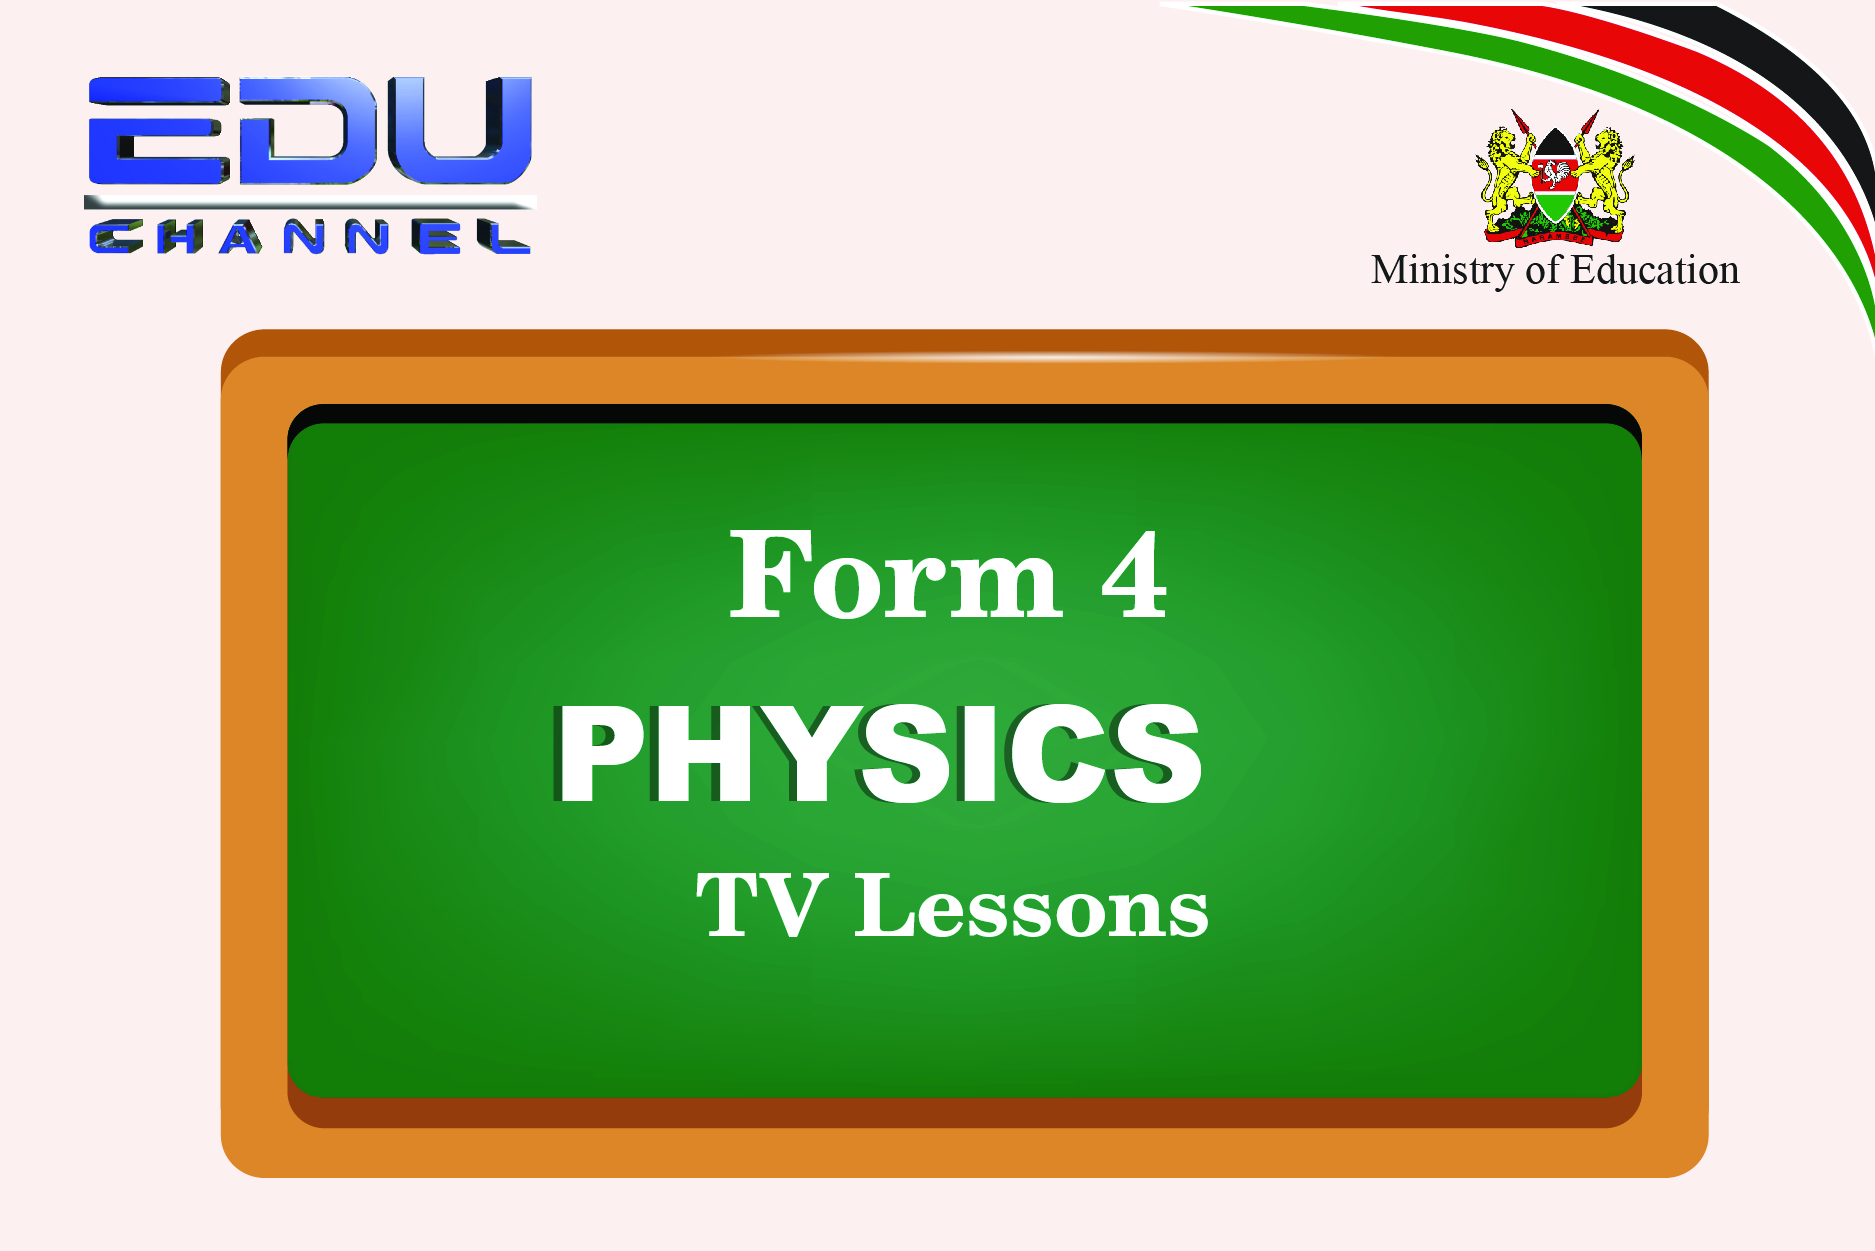 Form 4 physics Lesson 9: Cathode  rays - Osallascope